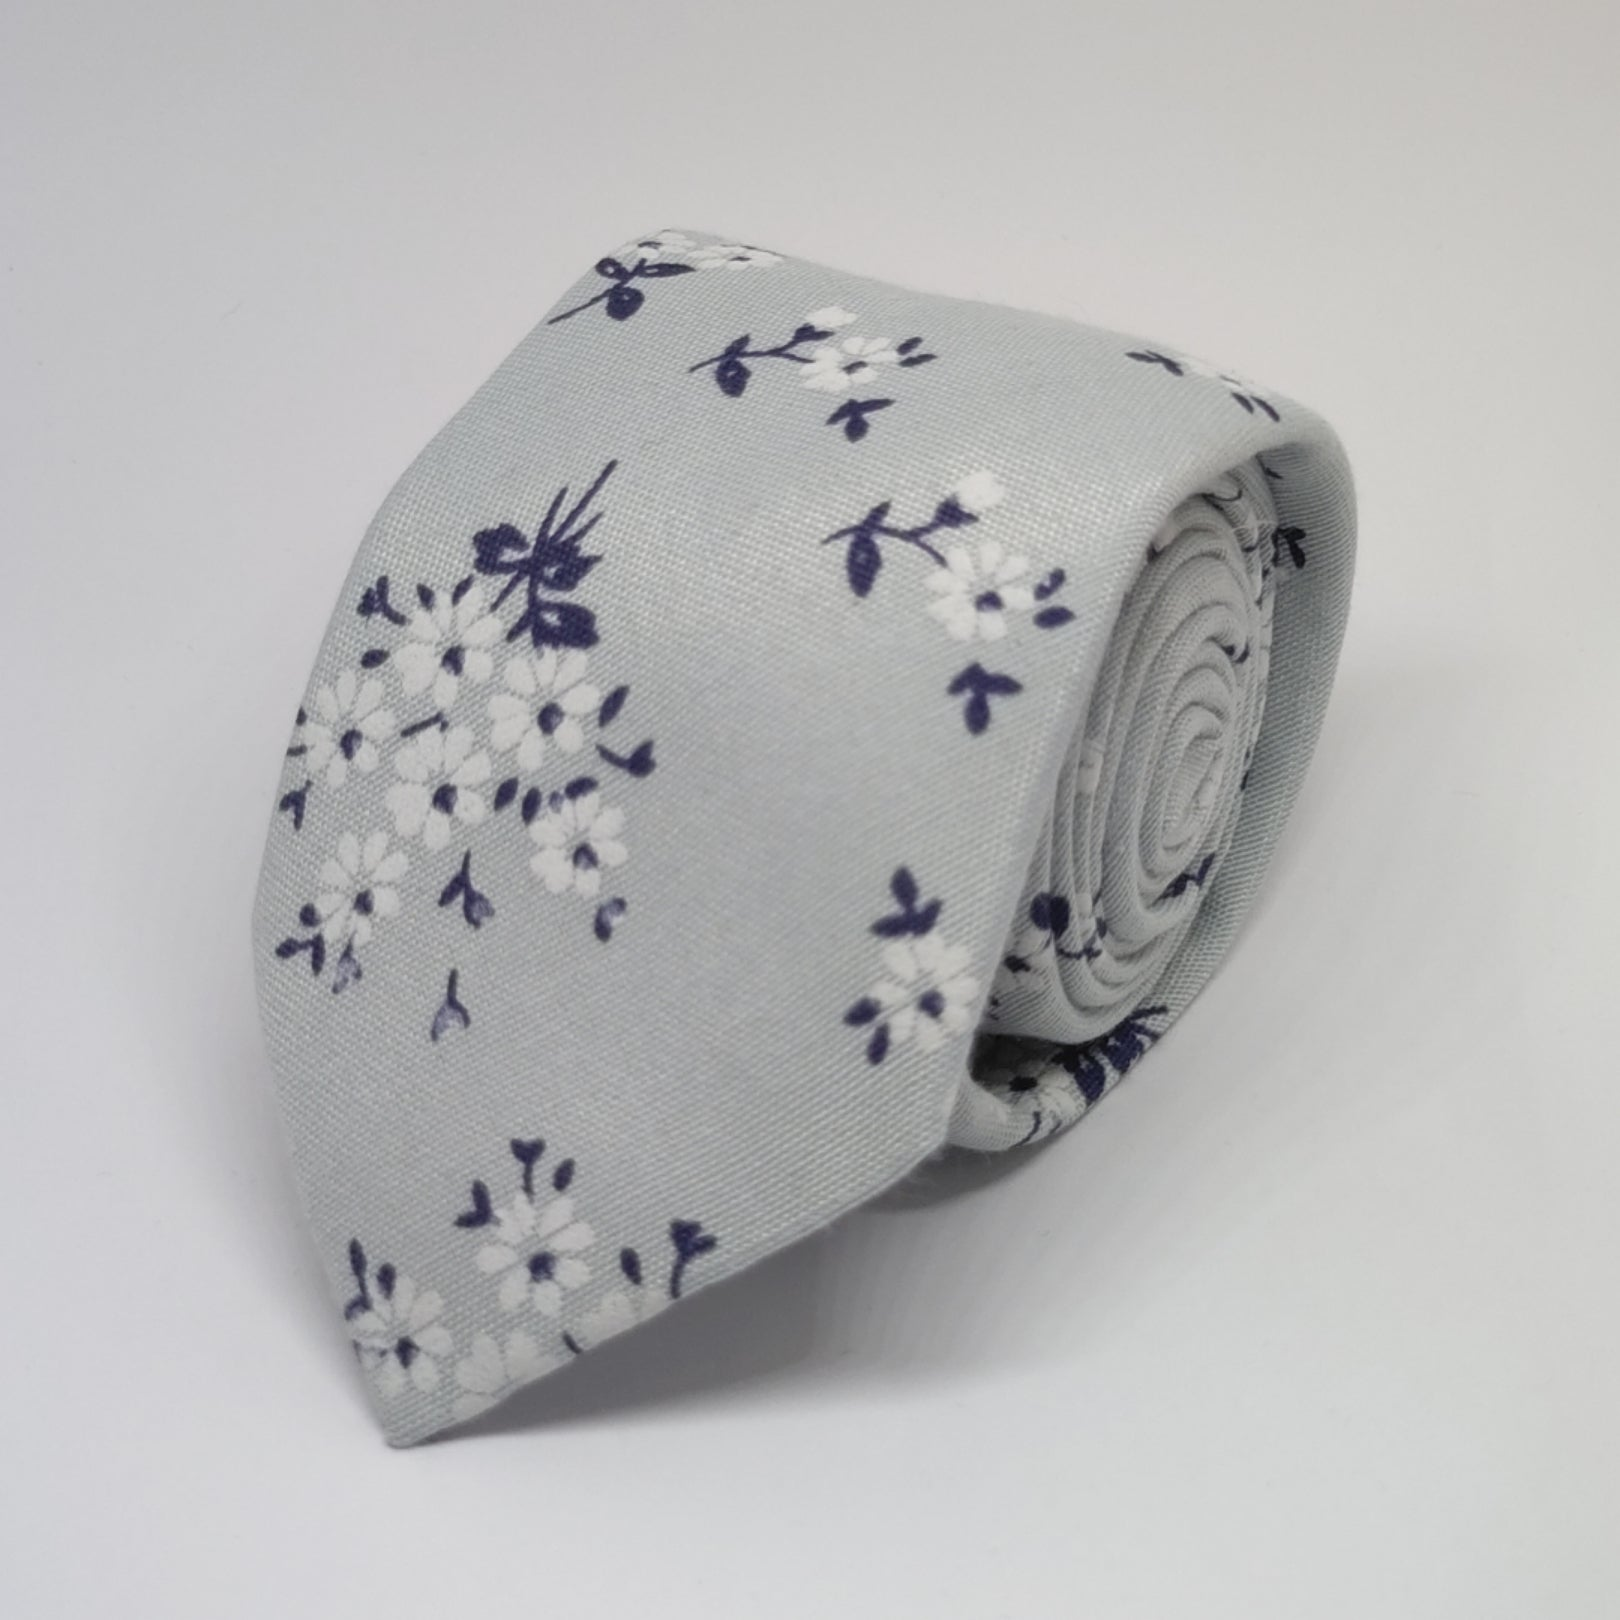 Woven Floral Tie